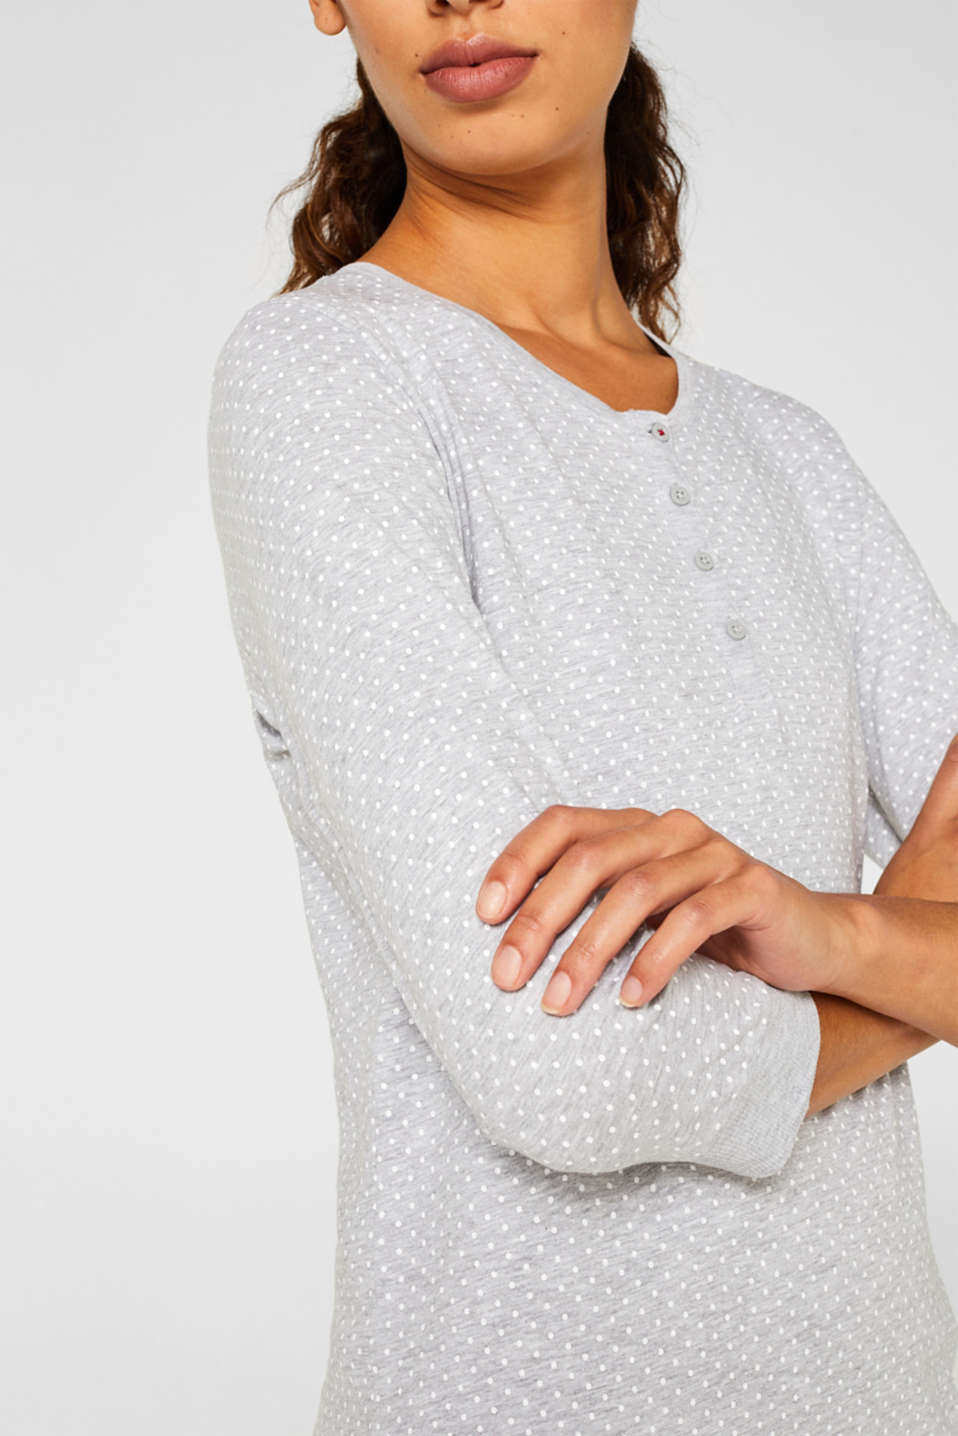 MODERN COTTON mix + match nightshirt, LIGHT GREY, detail image number 5